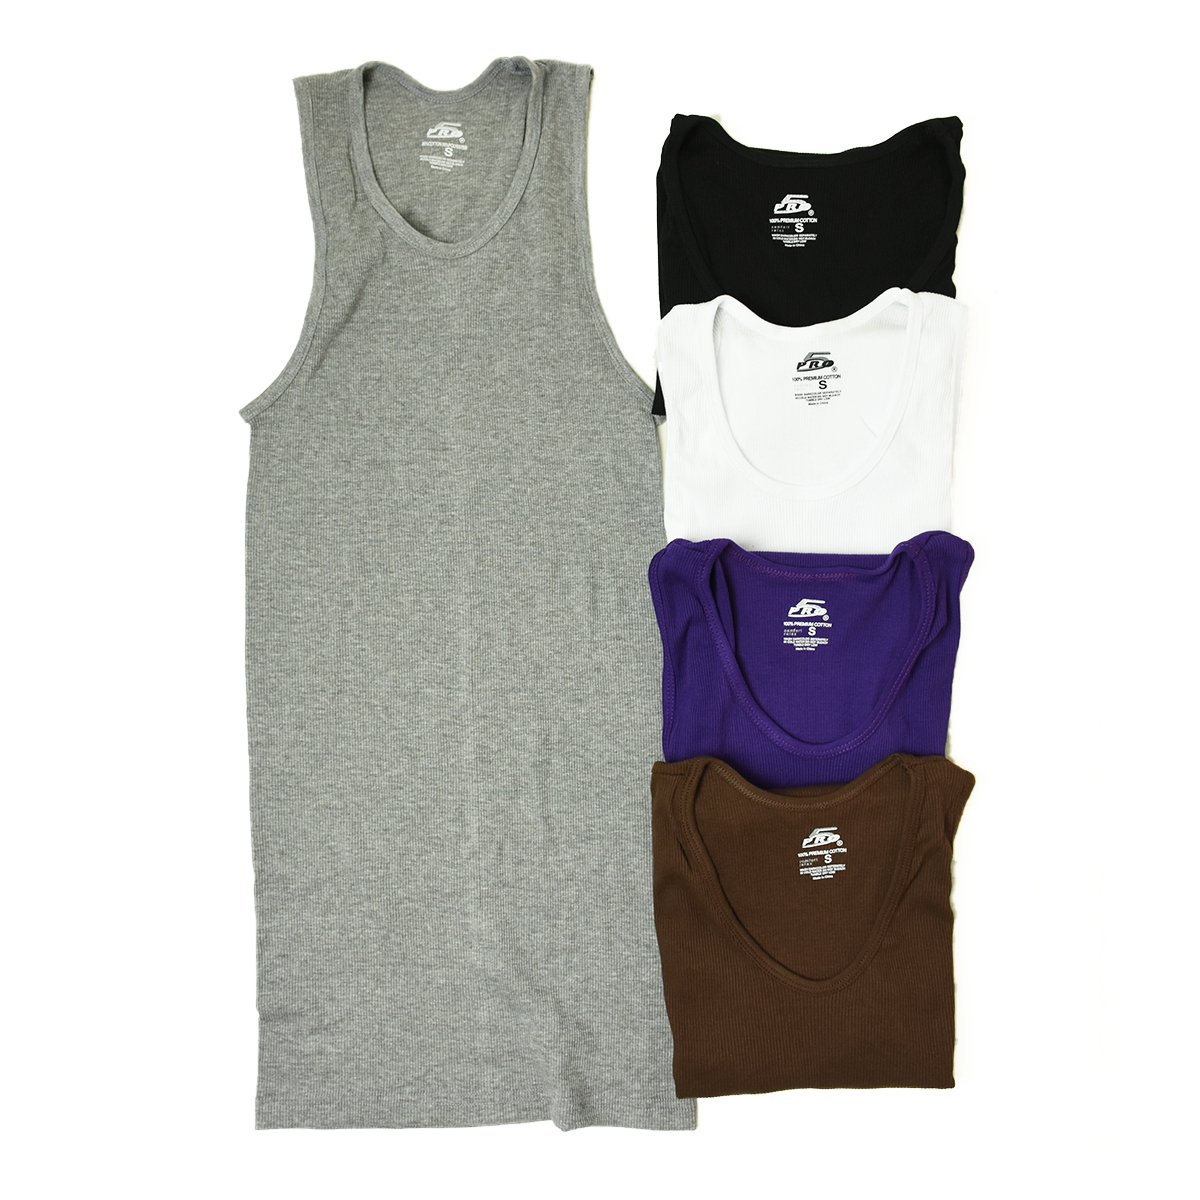 <img class='new_mark_img1' src='https://img.shop-pro.jp/img/new/icons8.gif' style='border:none;display:inline;margin:0px;padding:0px;width:auto;' />【PRO 5】Tank Top (Gray,Black,White,Purple,Brown)                           </a>             <span class=